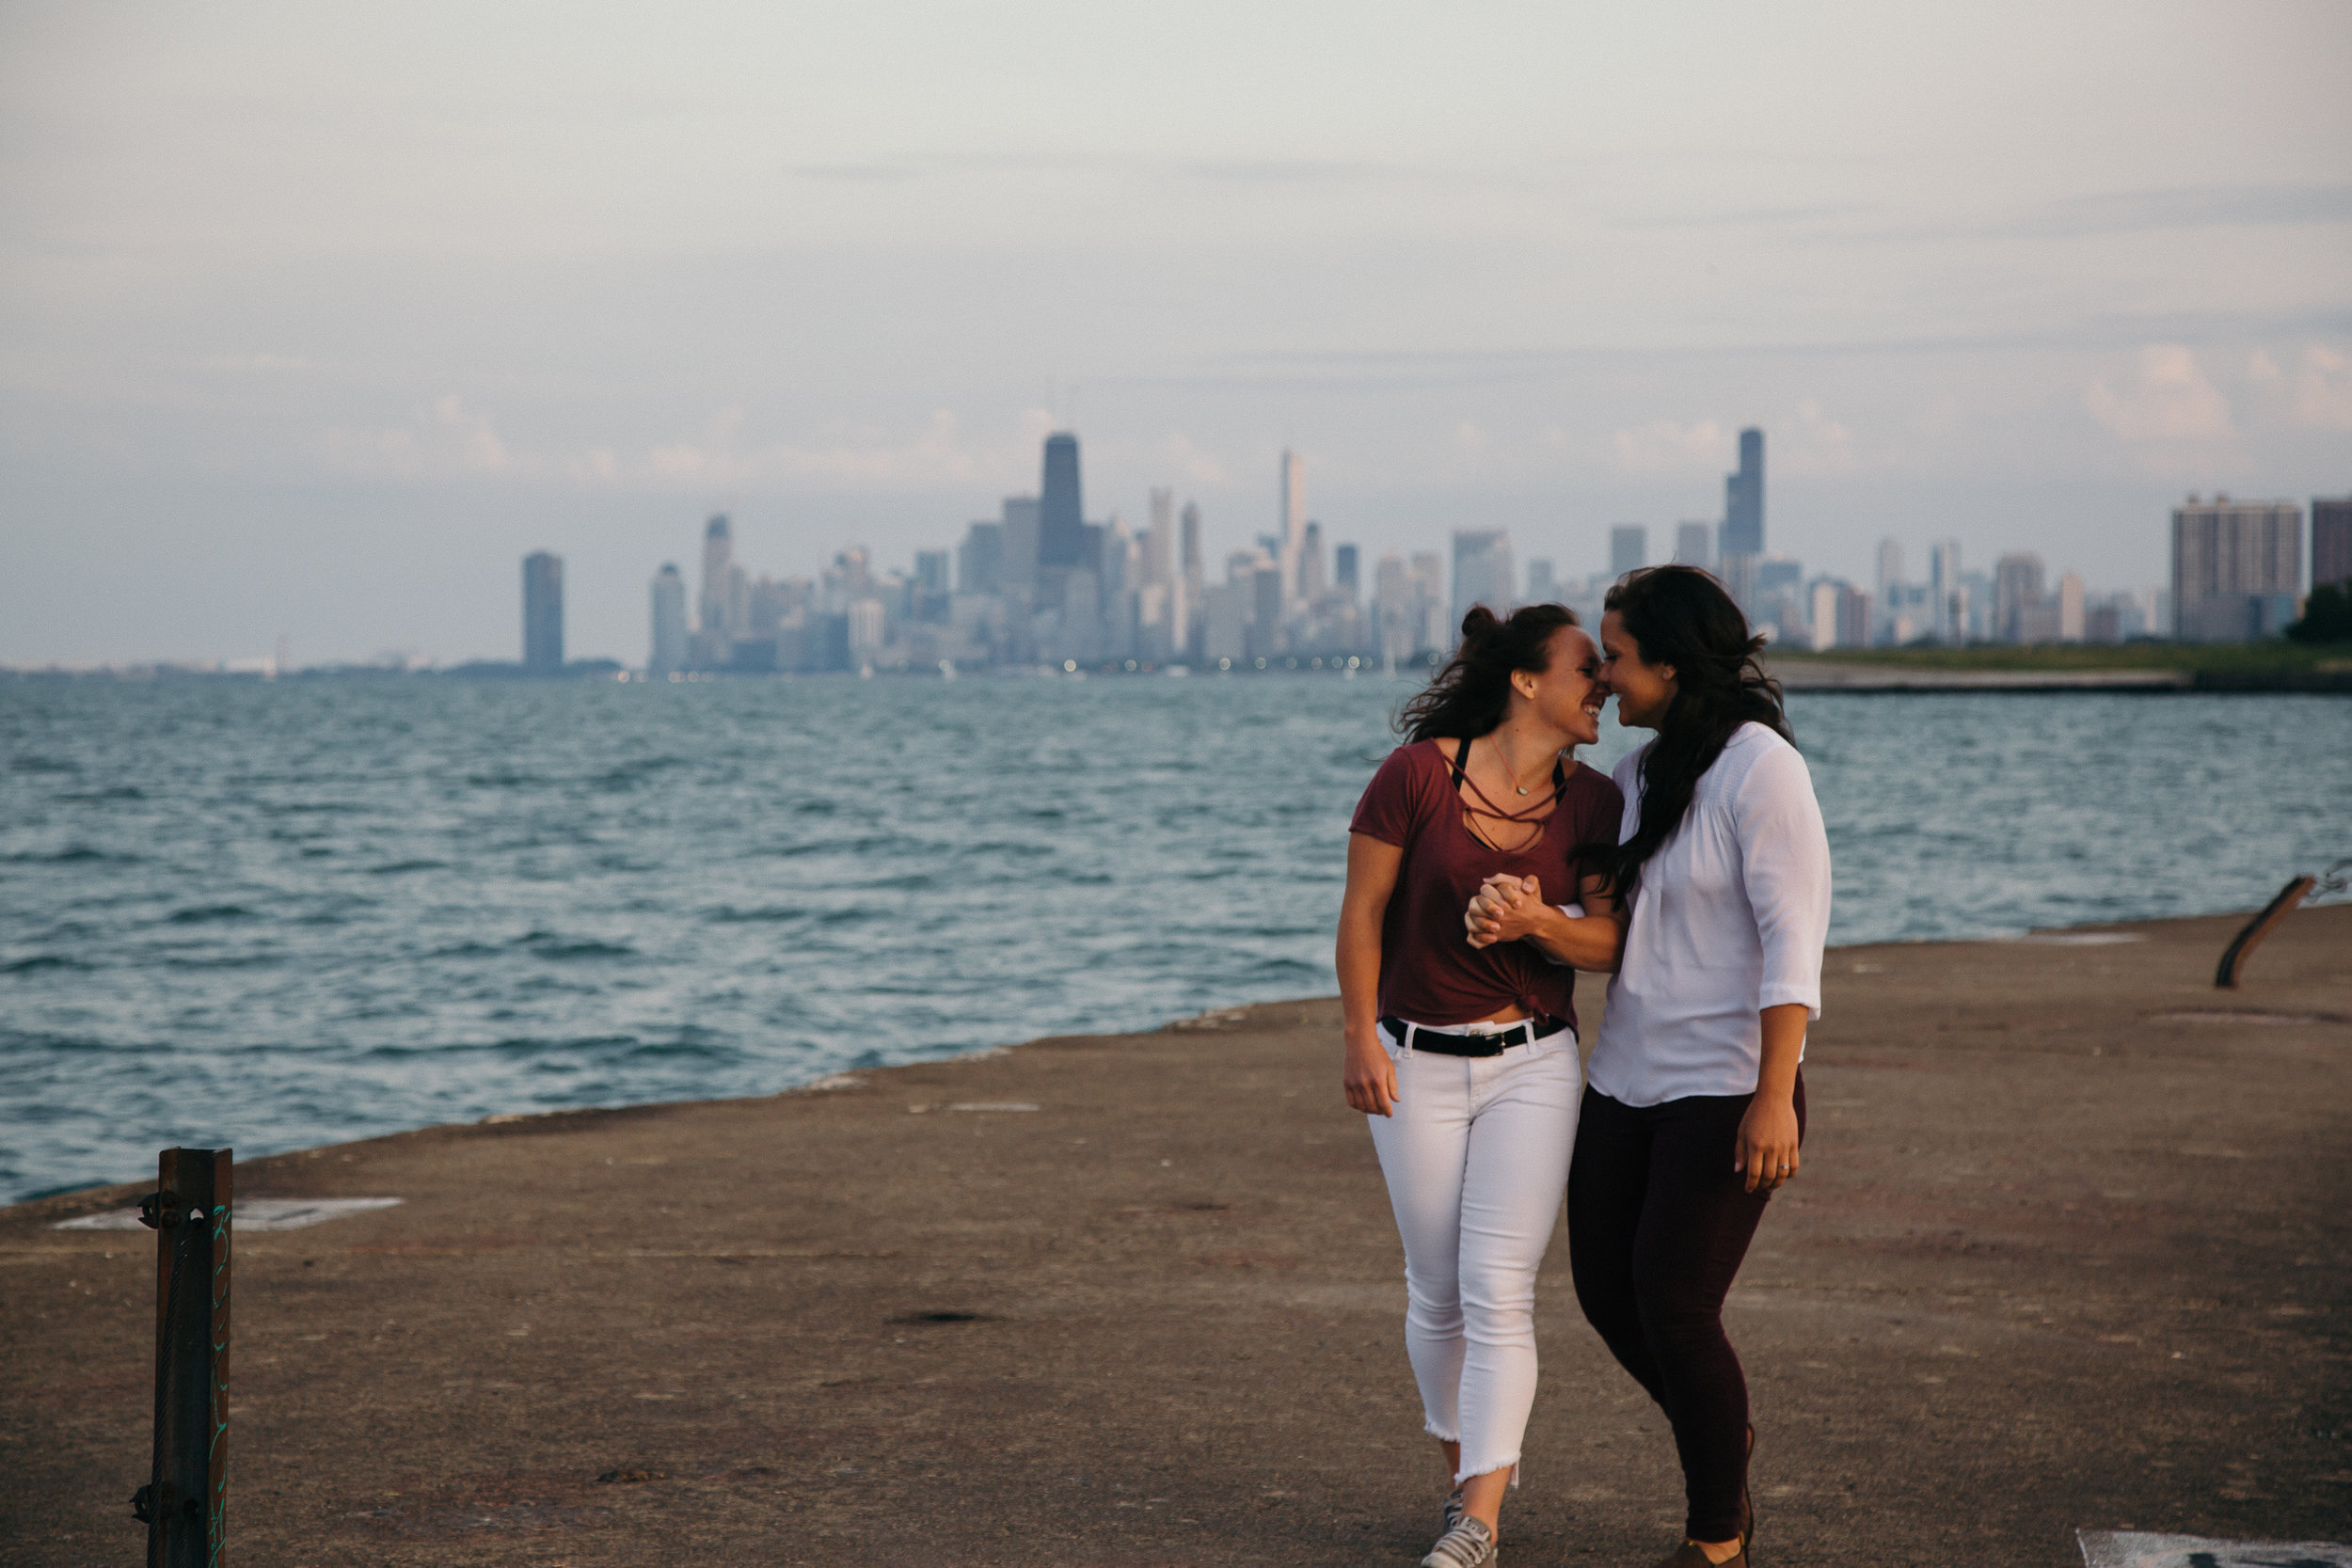 chicago_engagement_LGTBQ_pride-10.jpg